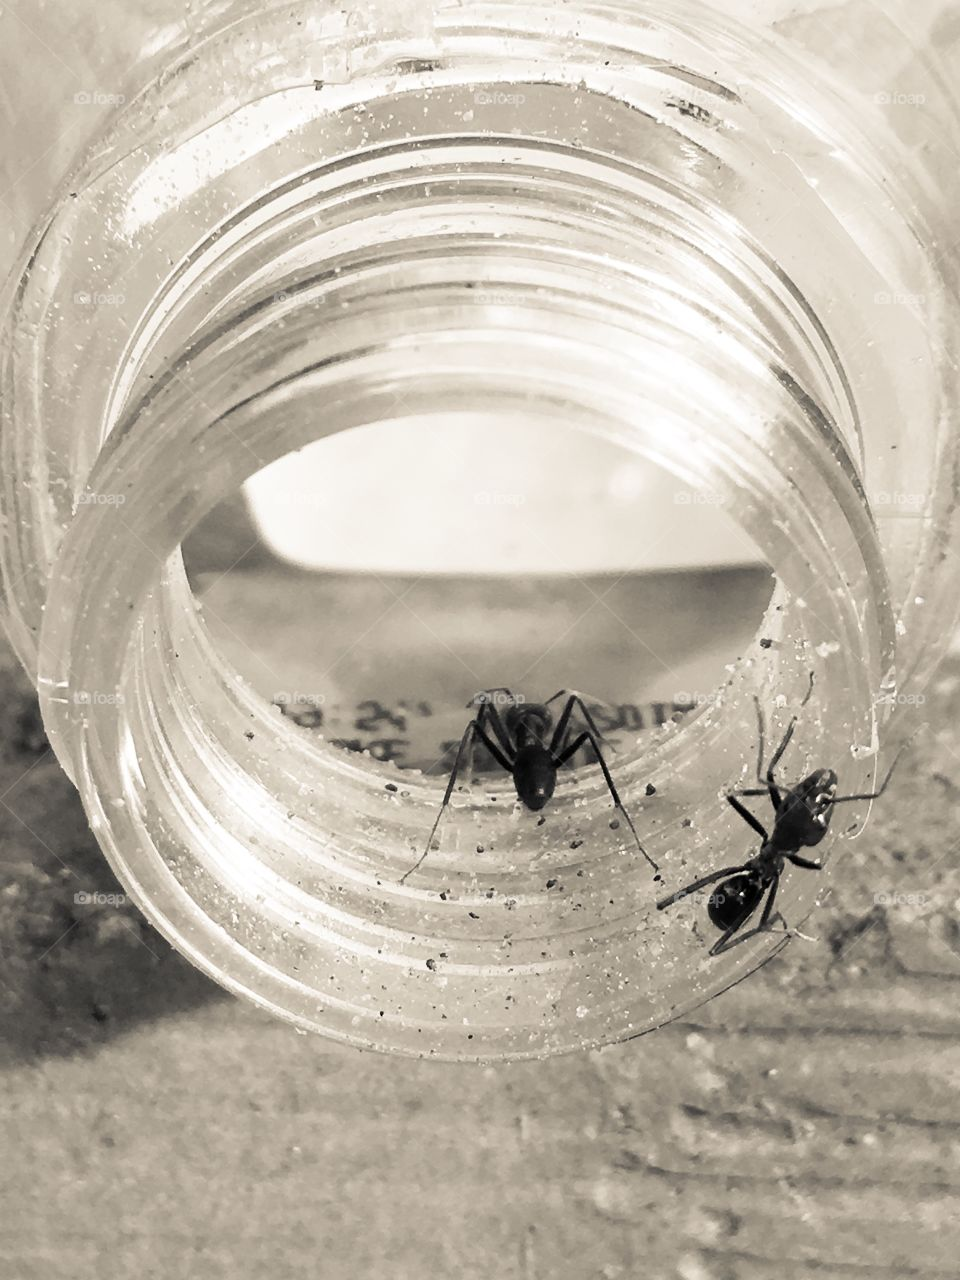 Worker ants Australia inside and outside glass jar large biting ants with pincers